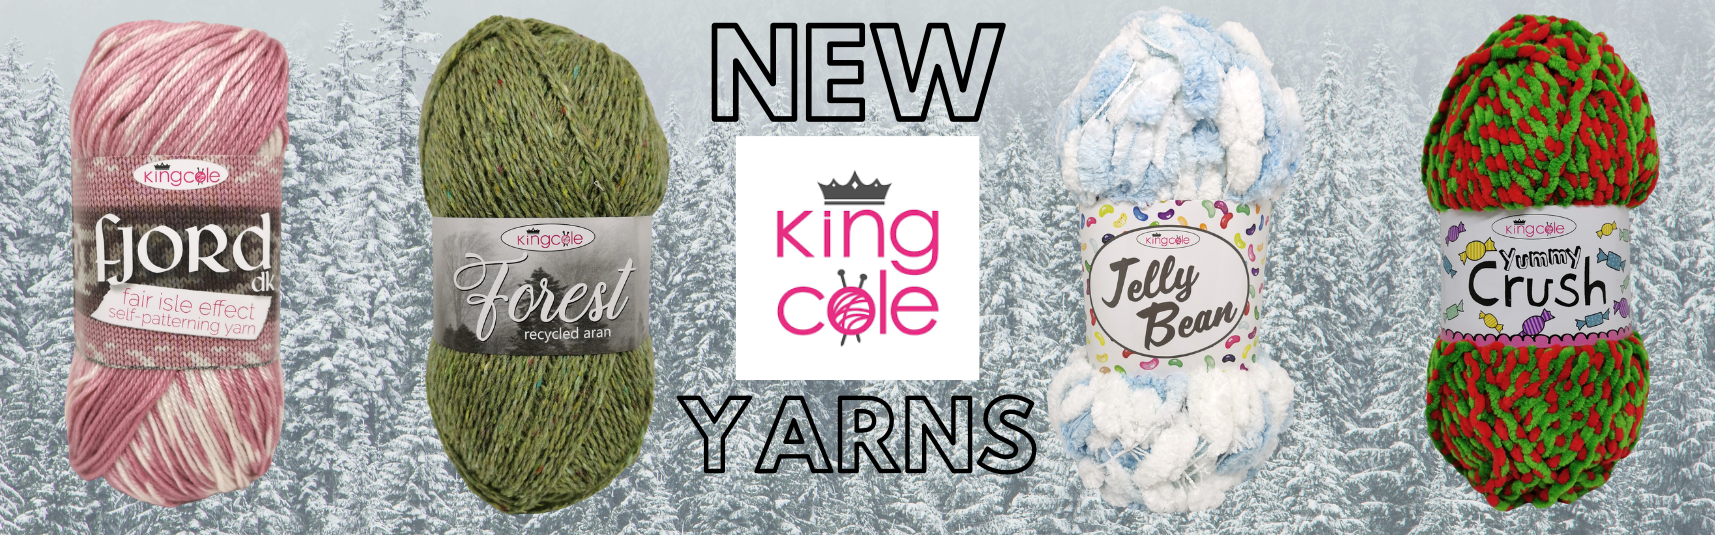 New In King Cole hand knitting yarns and wools